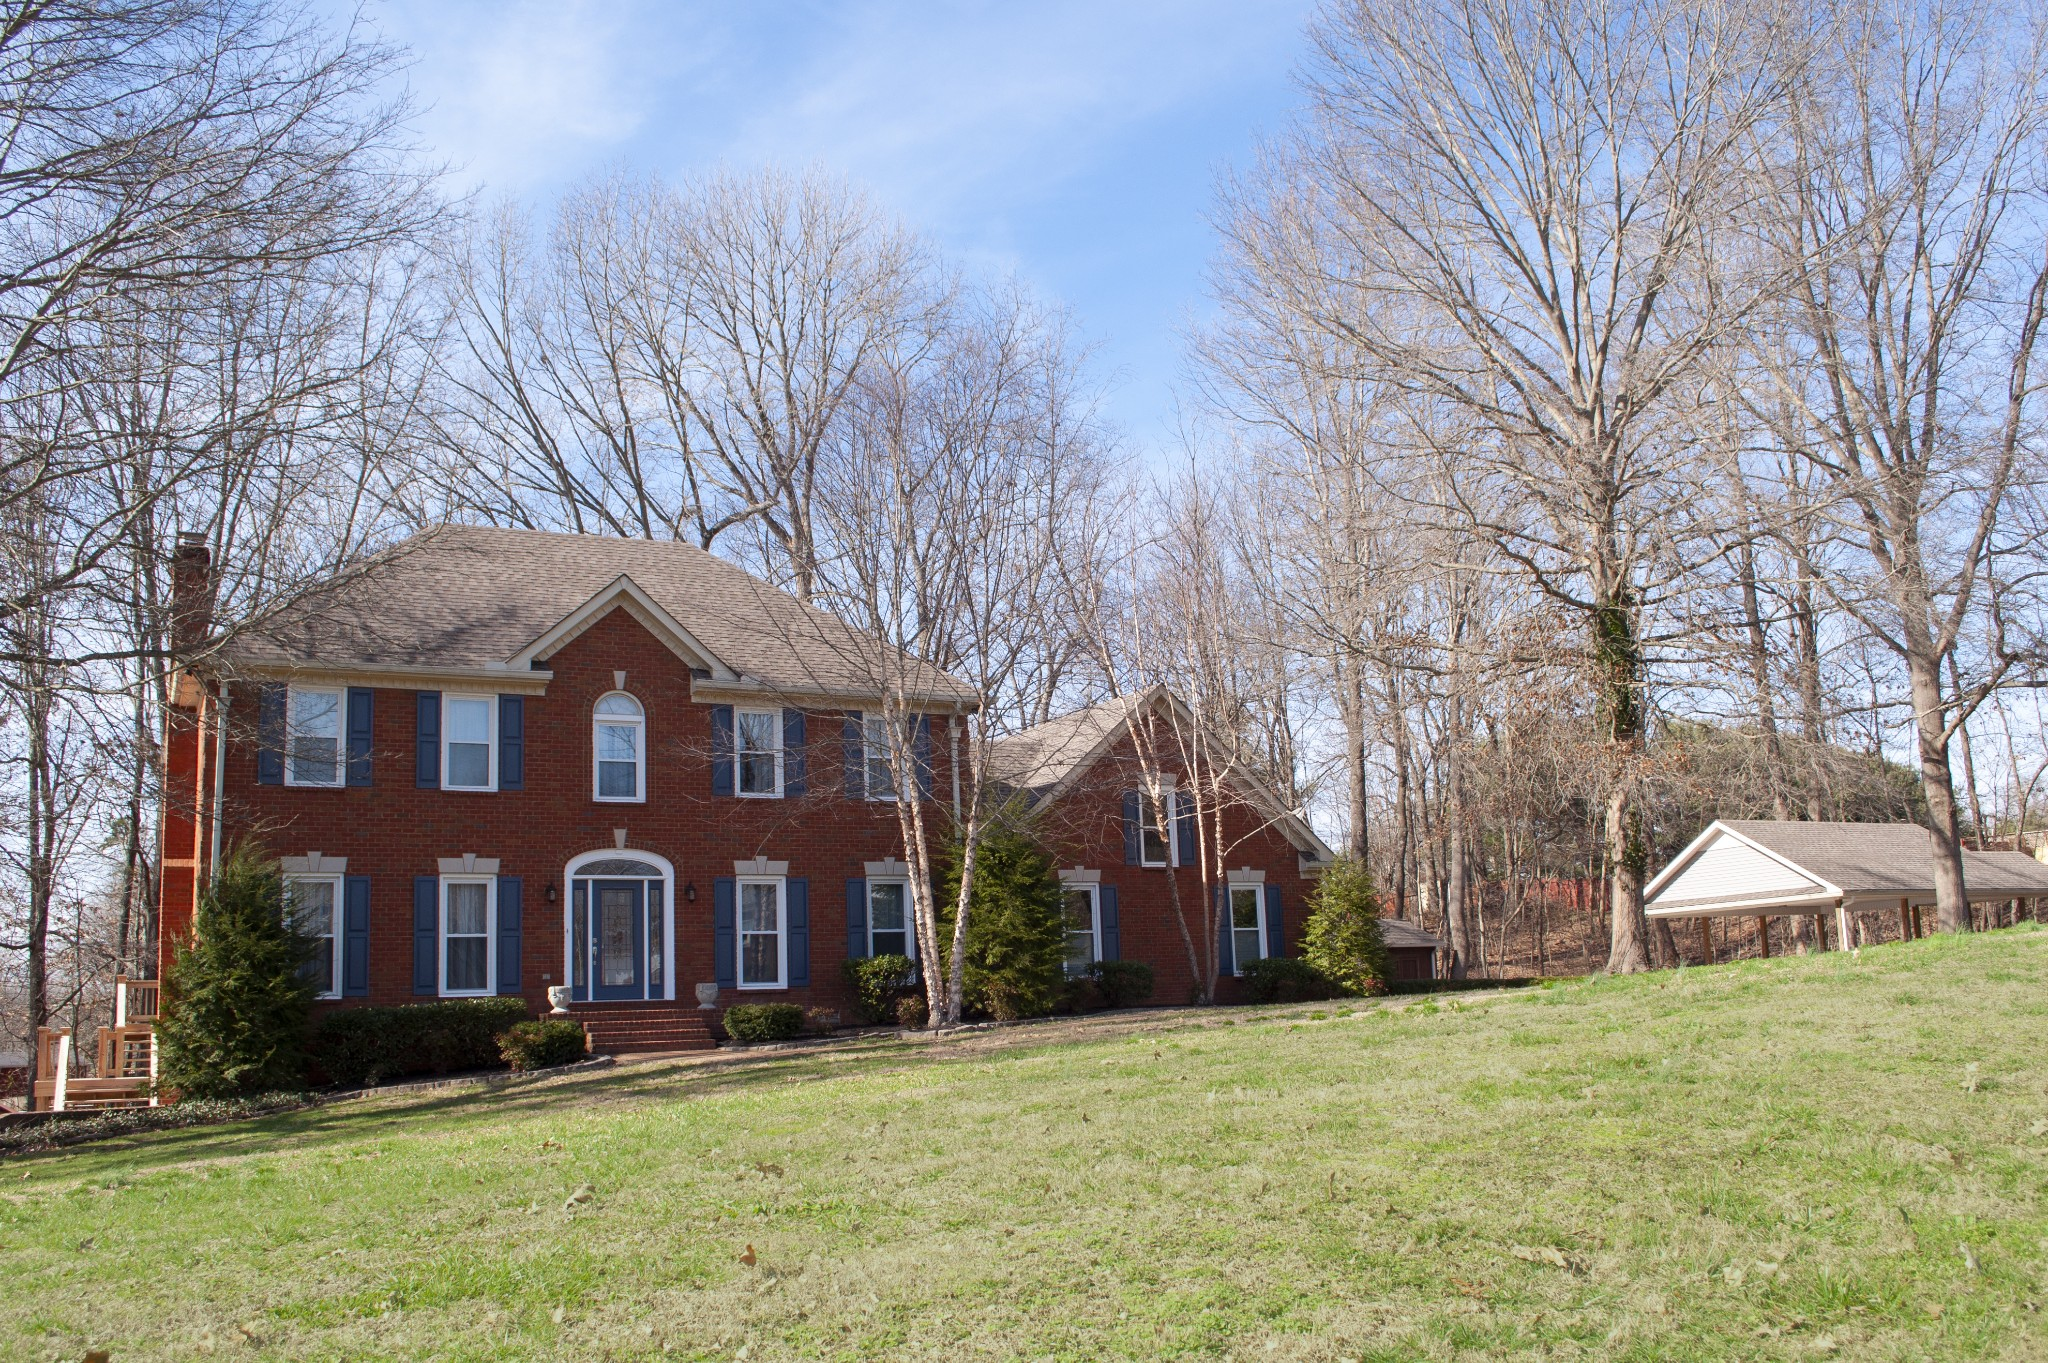 501 Tyler Ct, Cottontown, TN 37048 - Cottontown, TN real estate listing